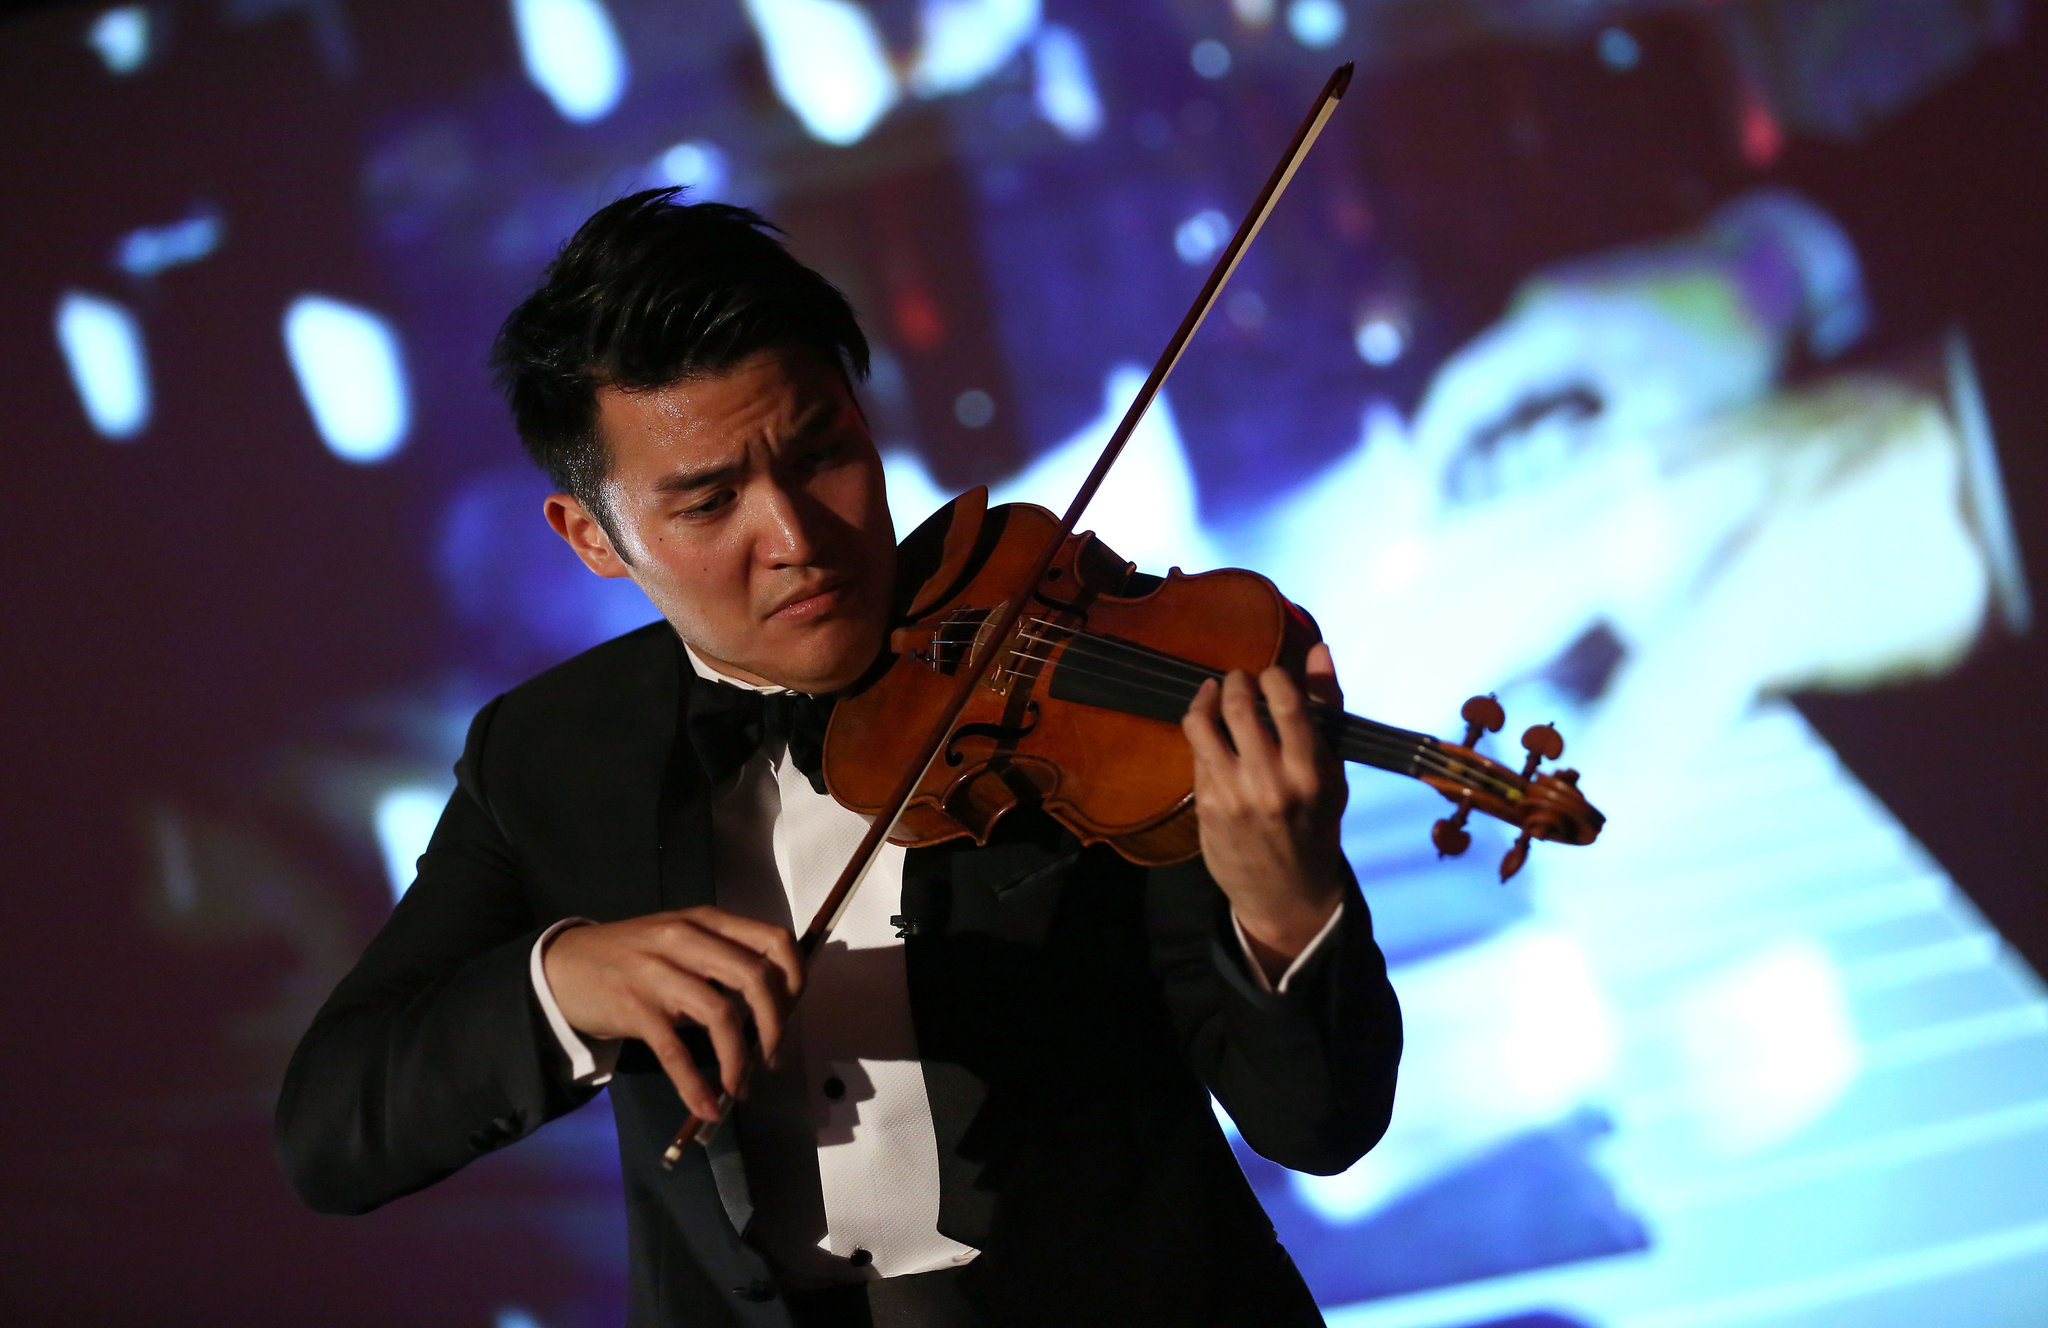 Ray Chen performing with the Israel Philharmonic Orchestra in London in 2014. The award-winning violinist is using social media to help build a younger audience for classical music.